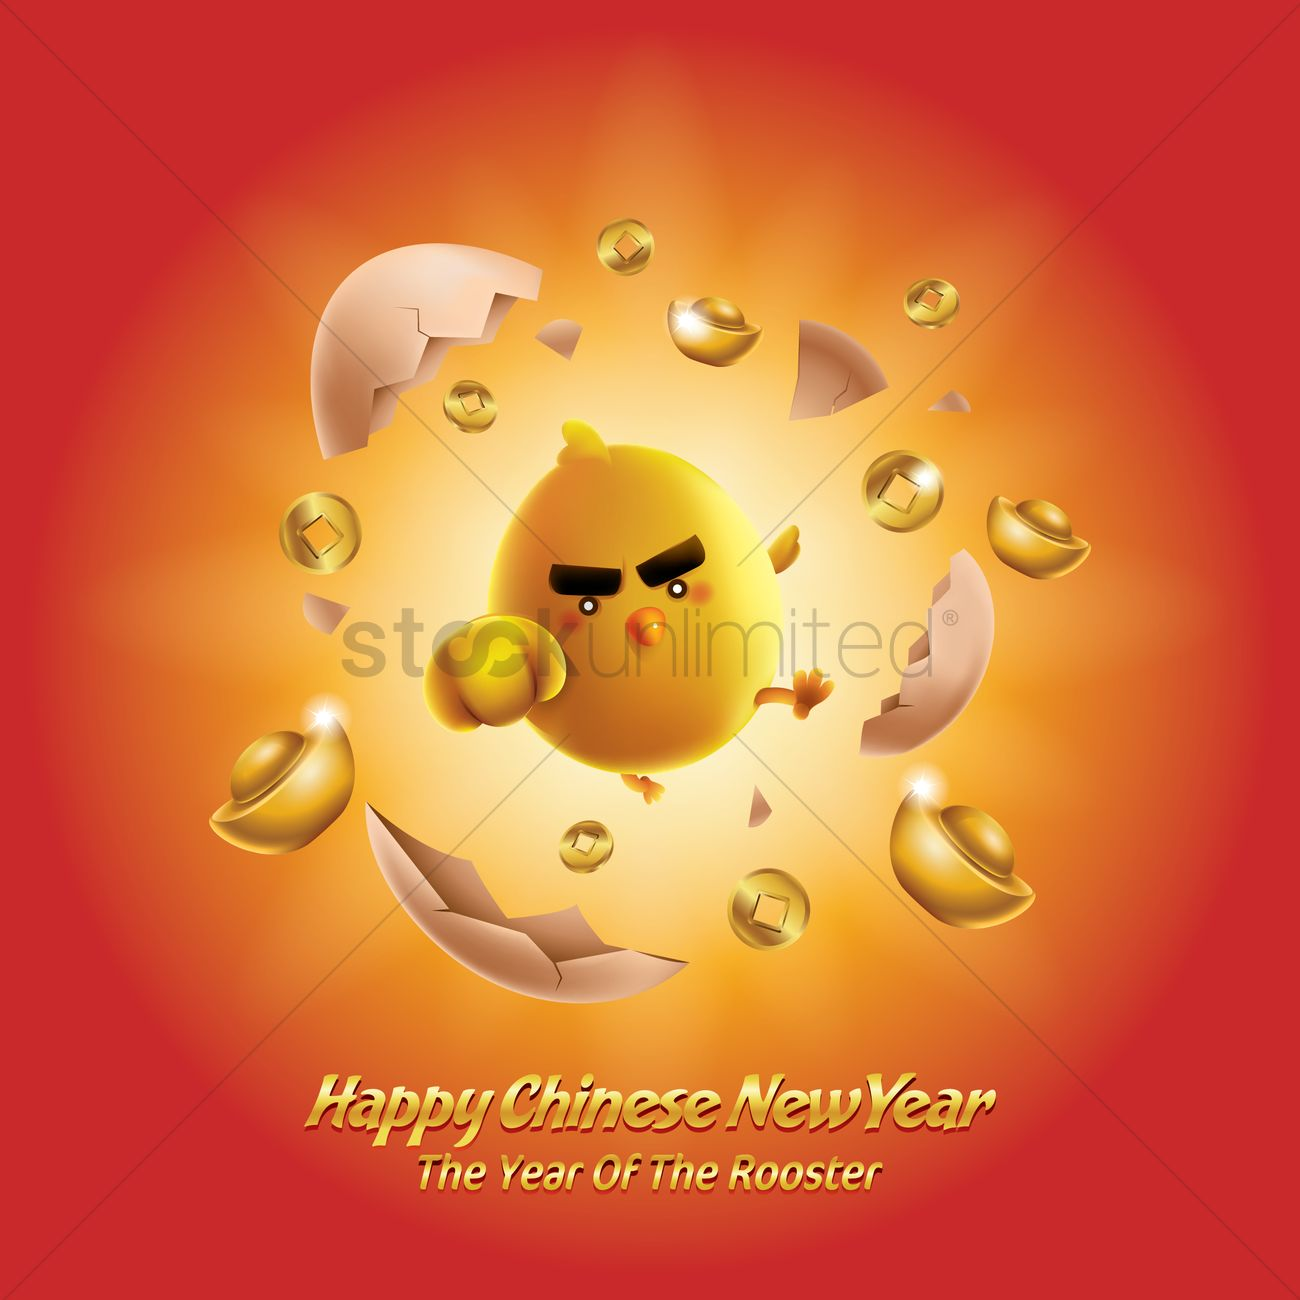 Happy chinese new year greeting vector image 1978956 stockunlimited happy chinese new year greeting vector graphic m4hsunfo